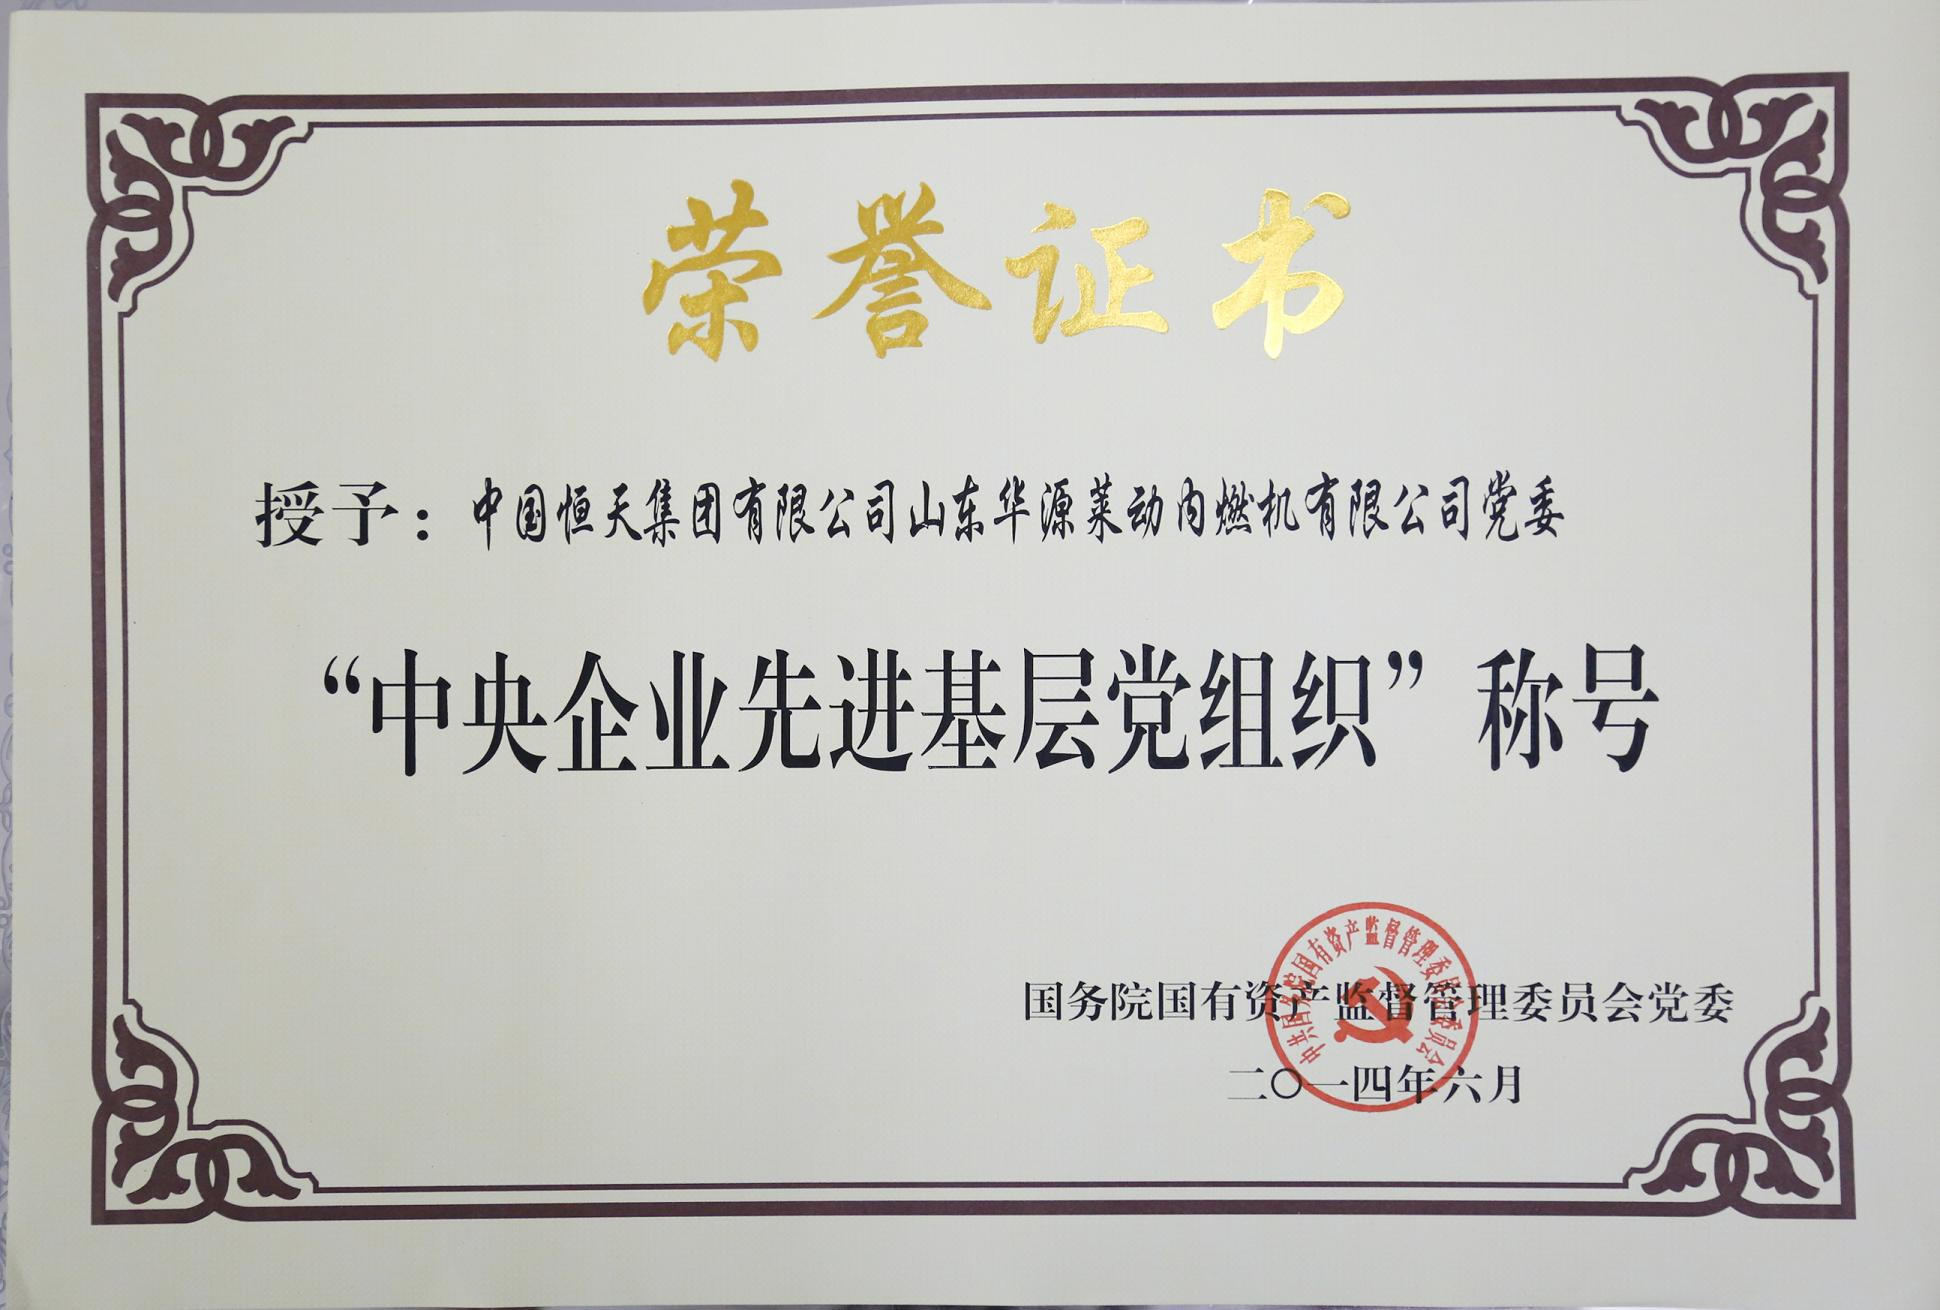 The State Council Award